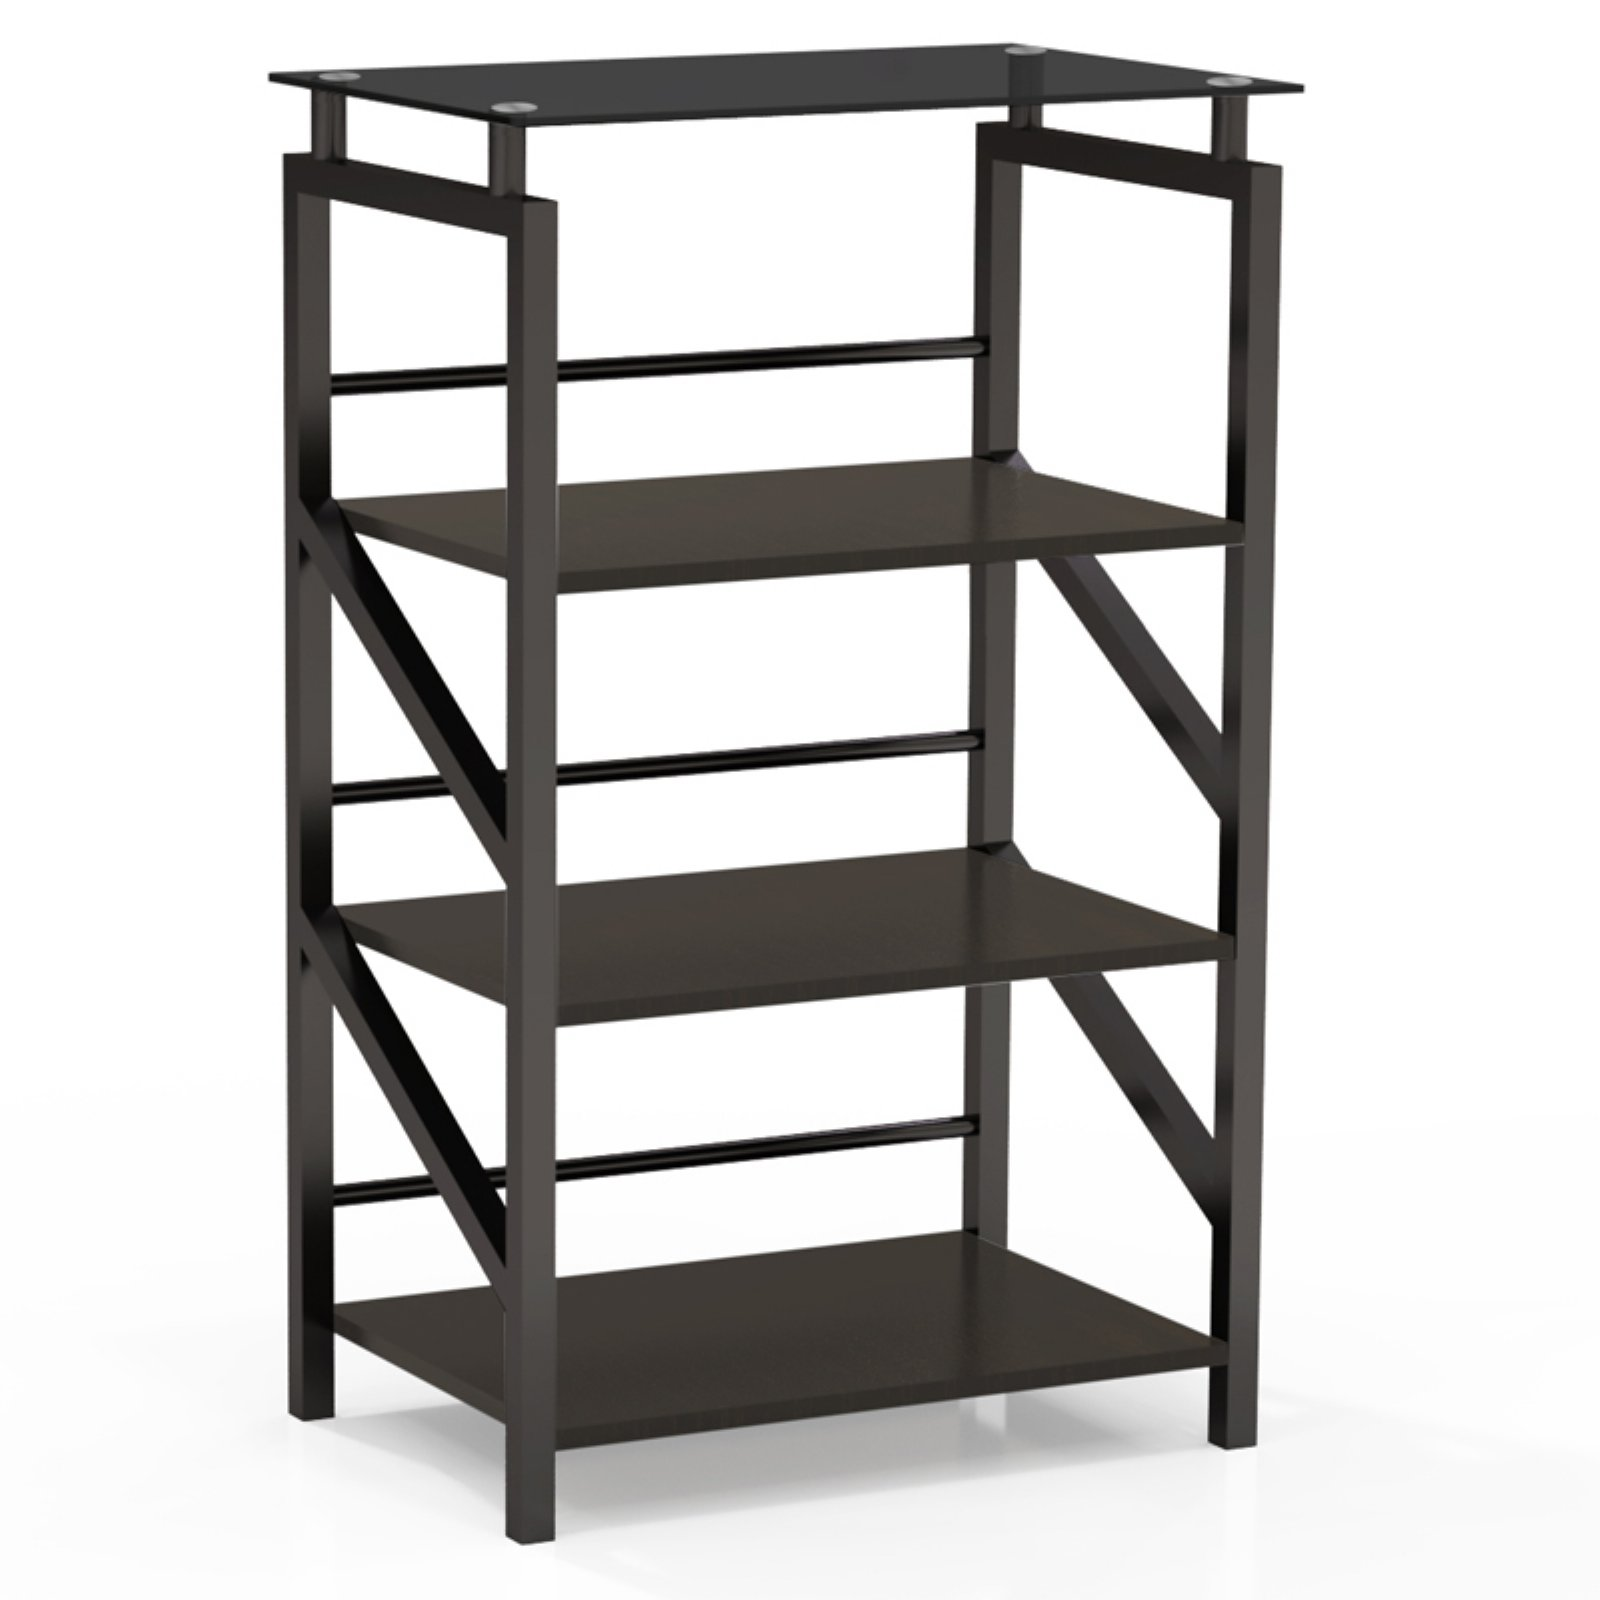 Mayline Soho Glass Top Accent Shelves Bookcase